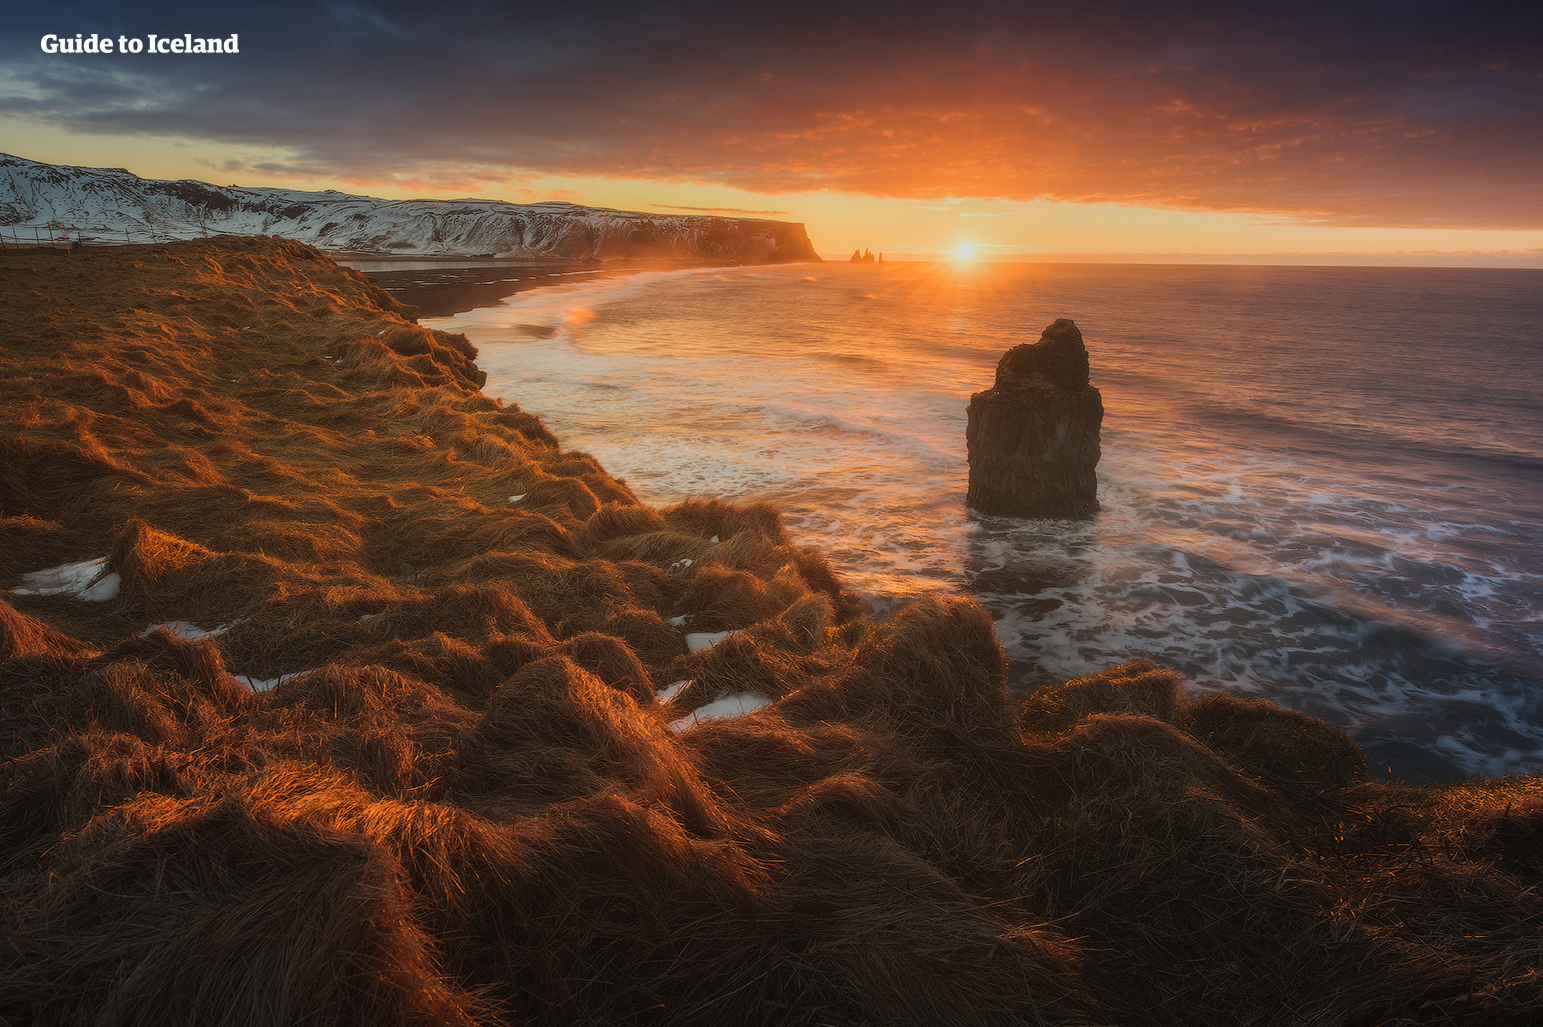 The rock formations off the South Coast of Iceland is very photogenic.